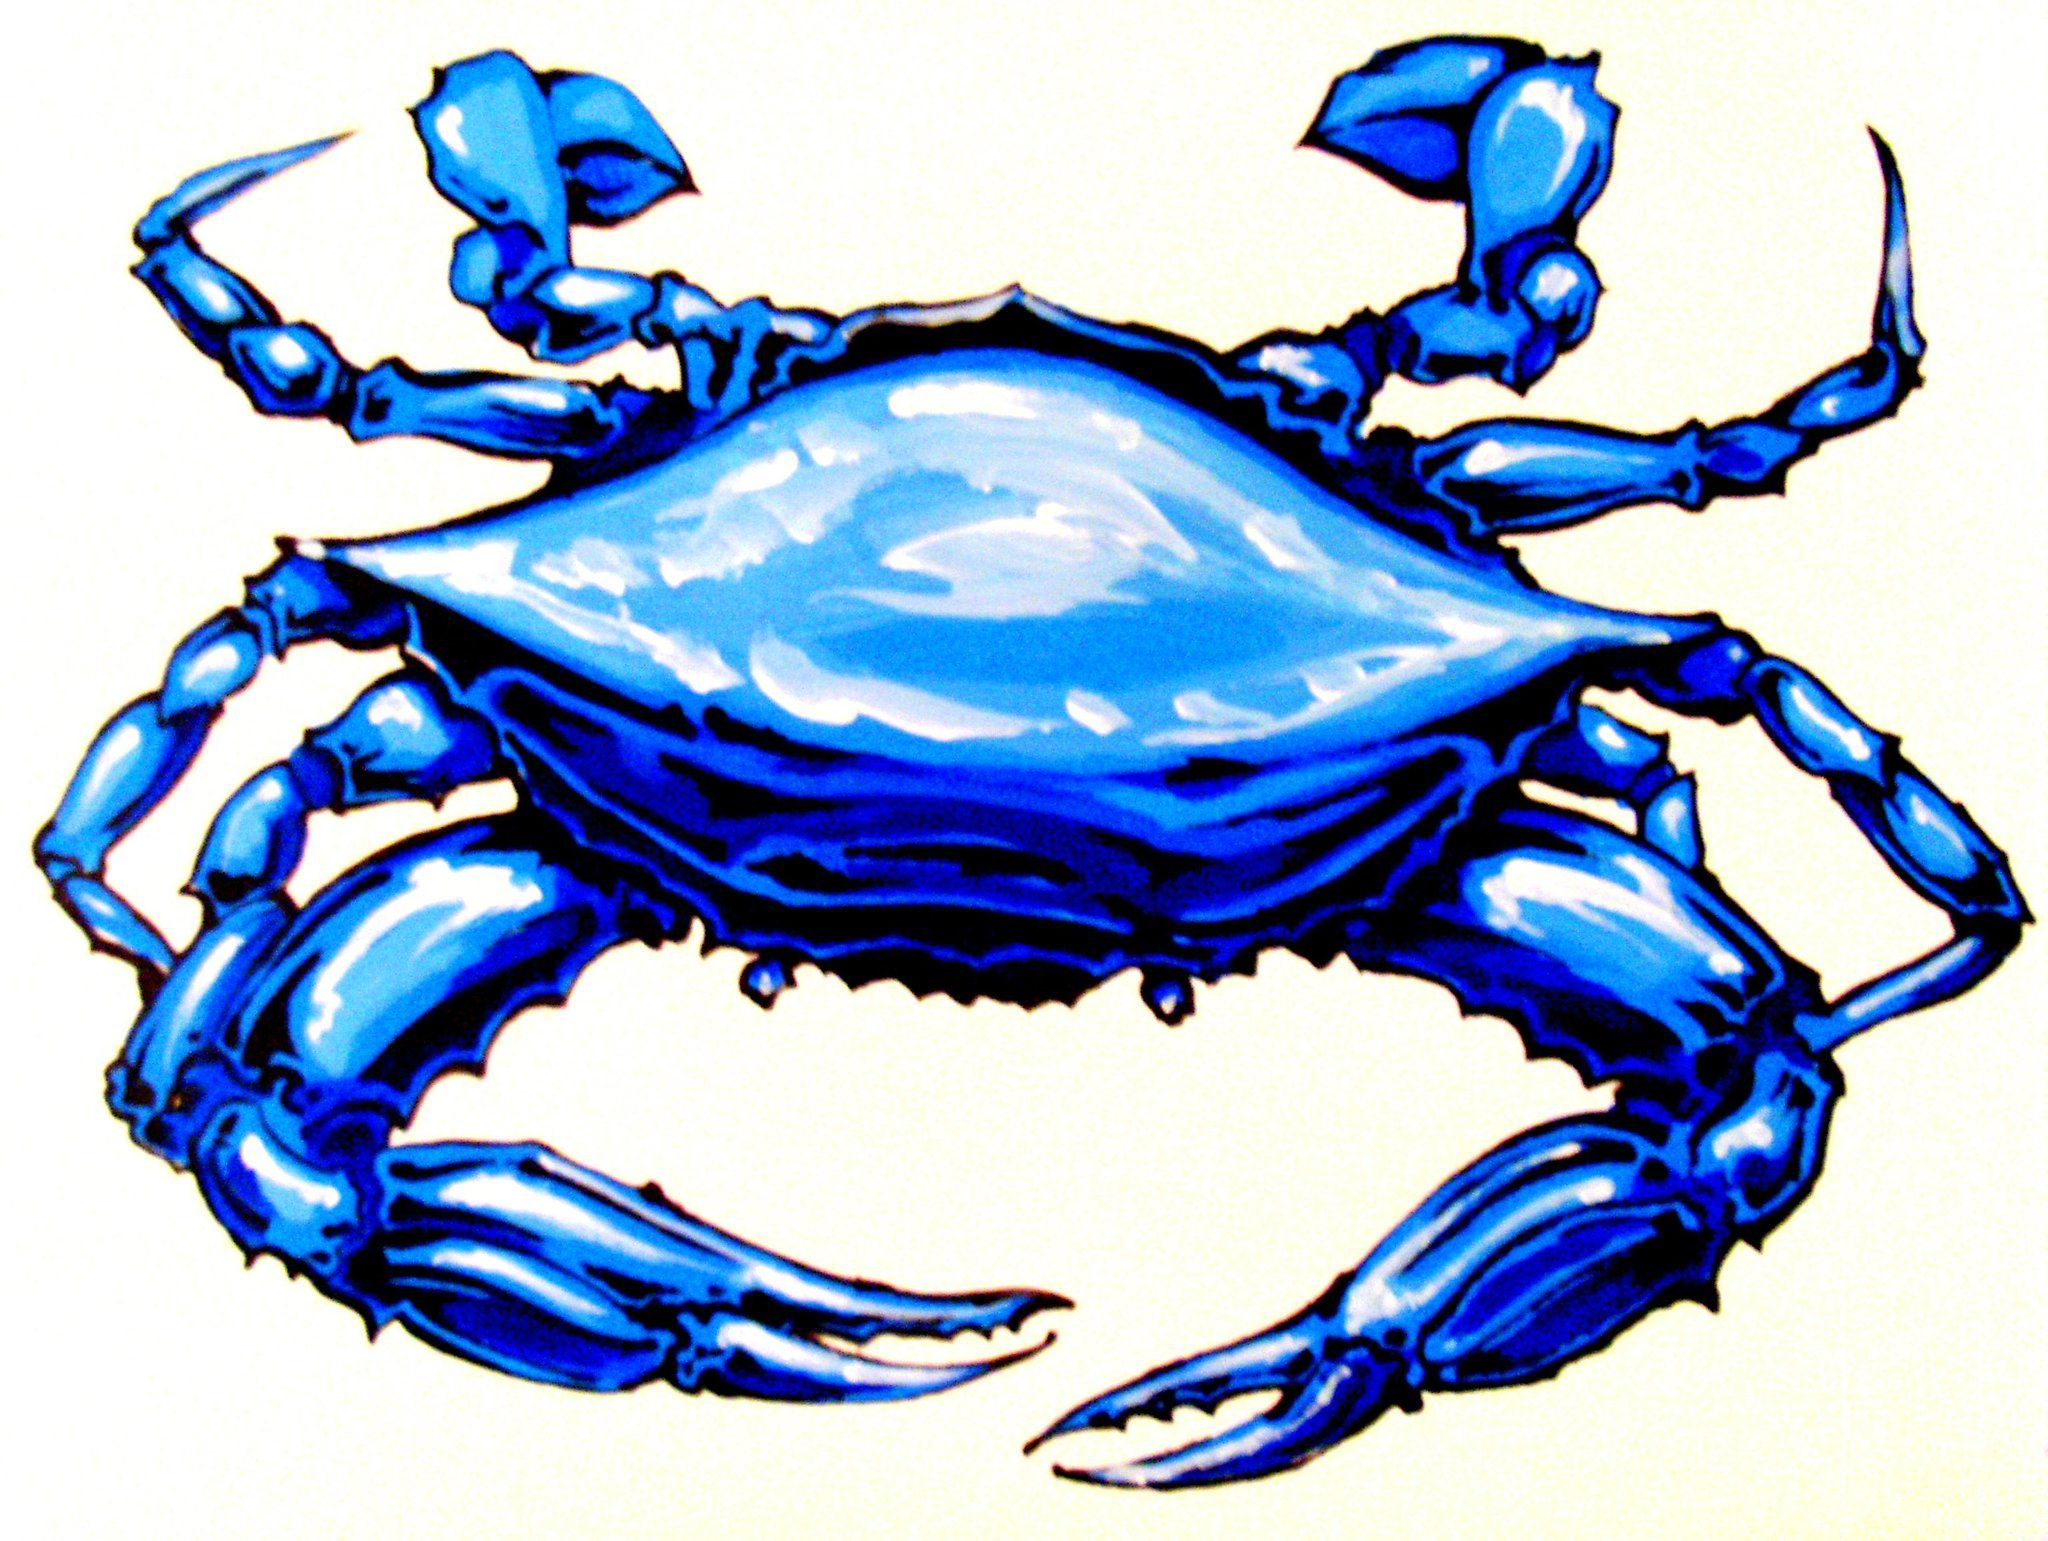 medium resolution of blue crab painting clipart panda free clipart images